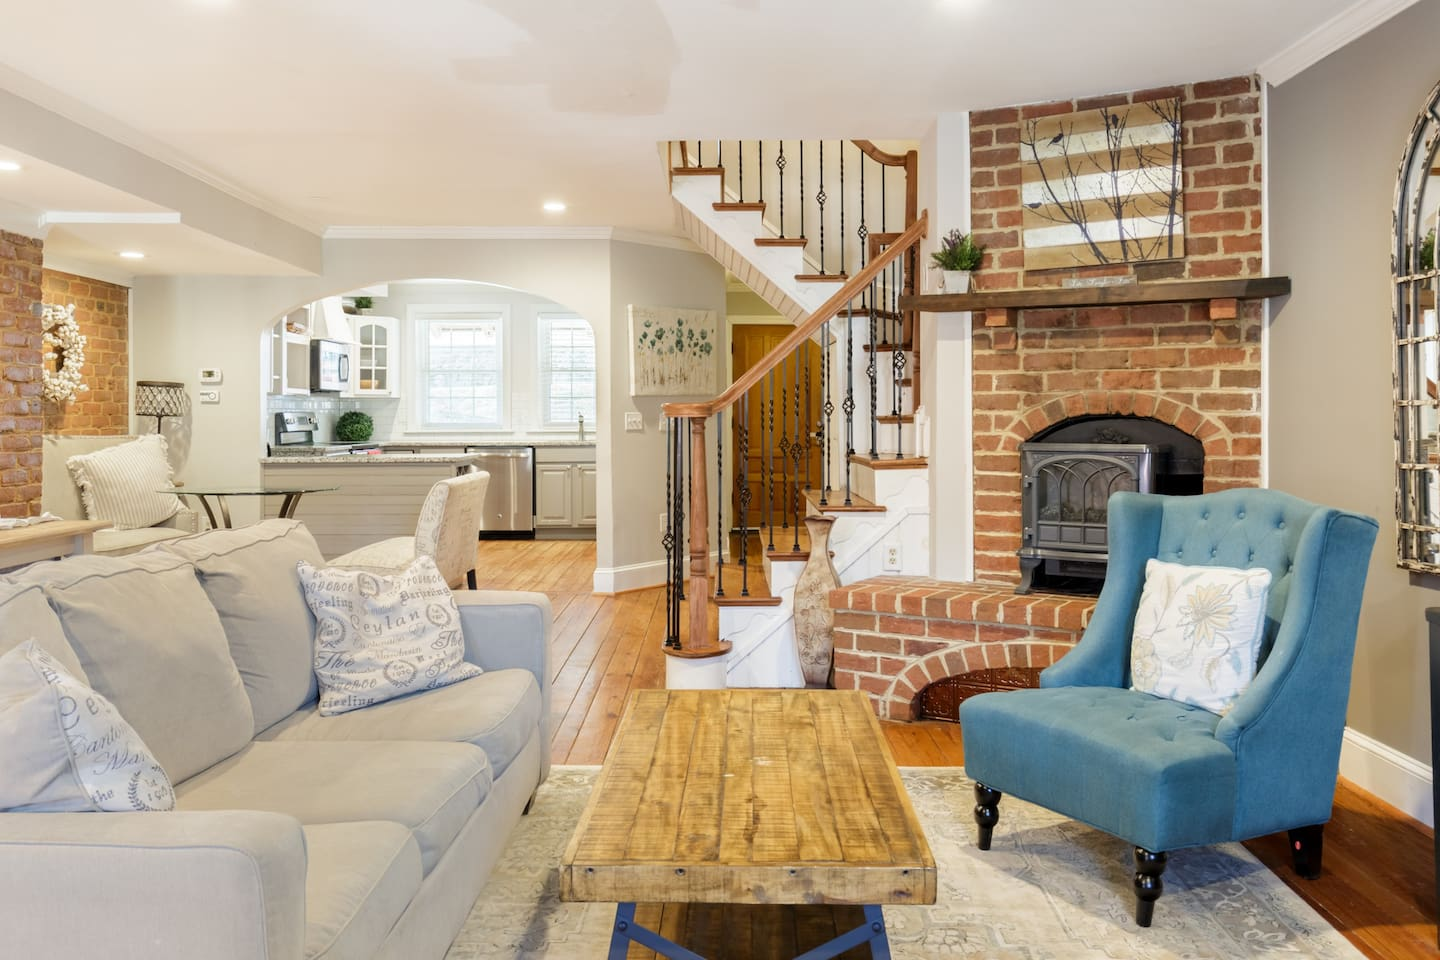 Best Airbnbs in Virginia